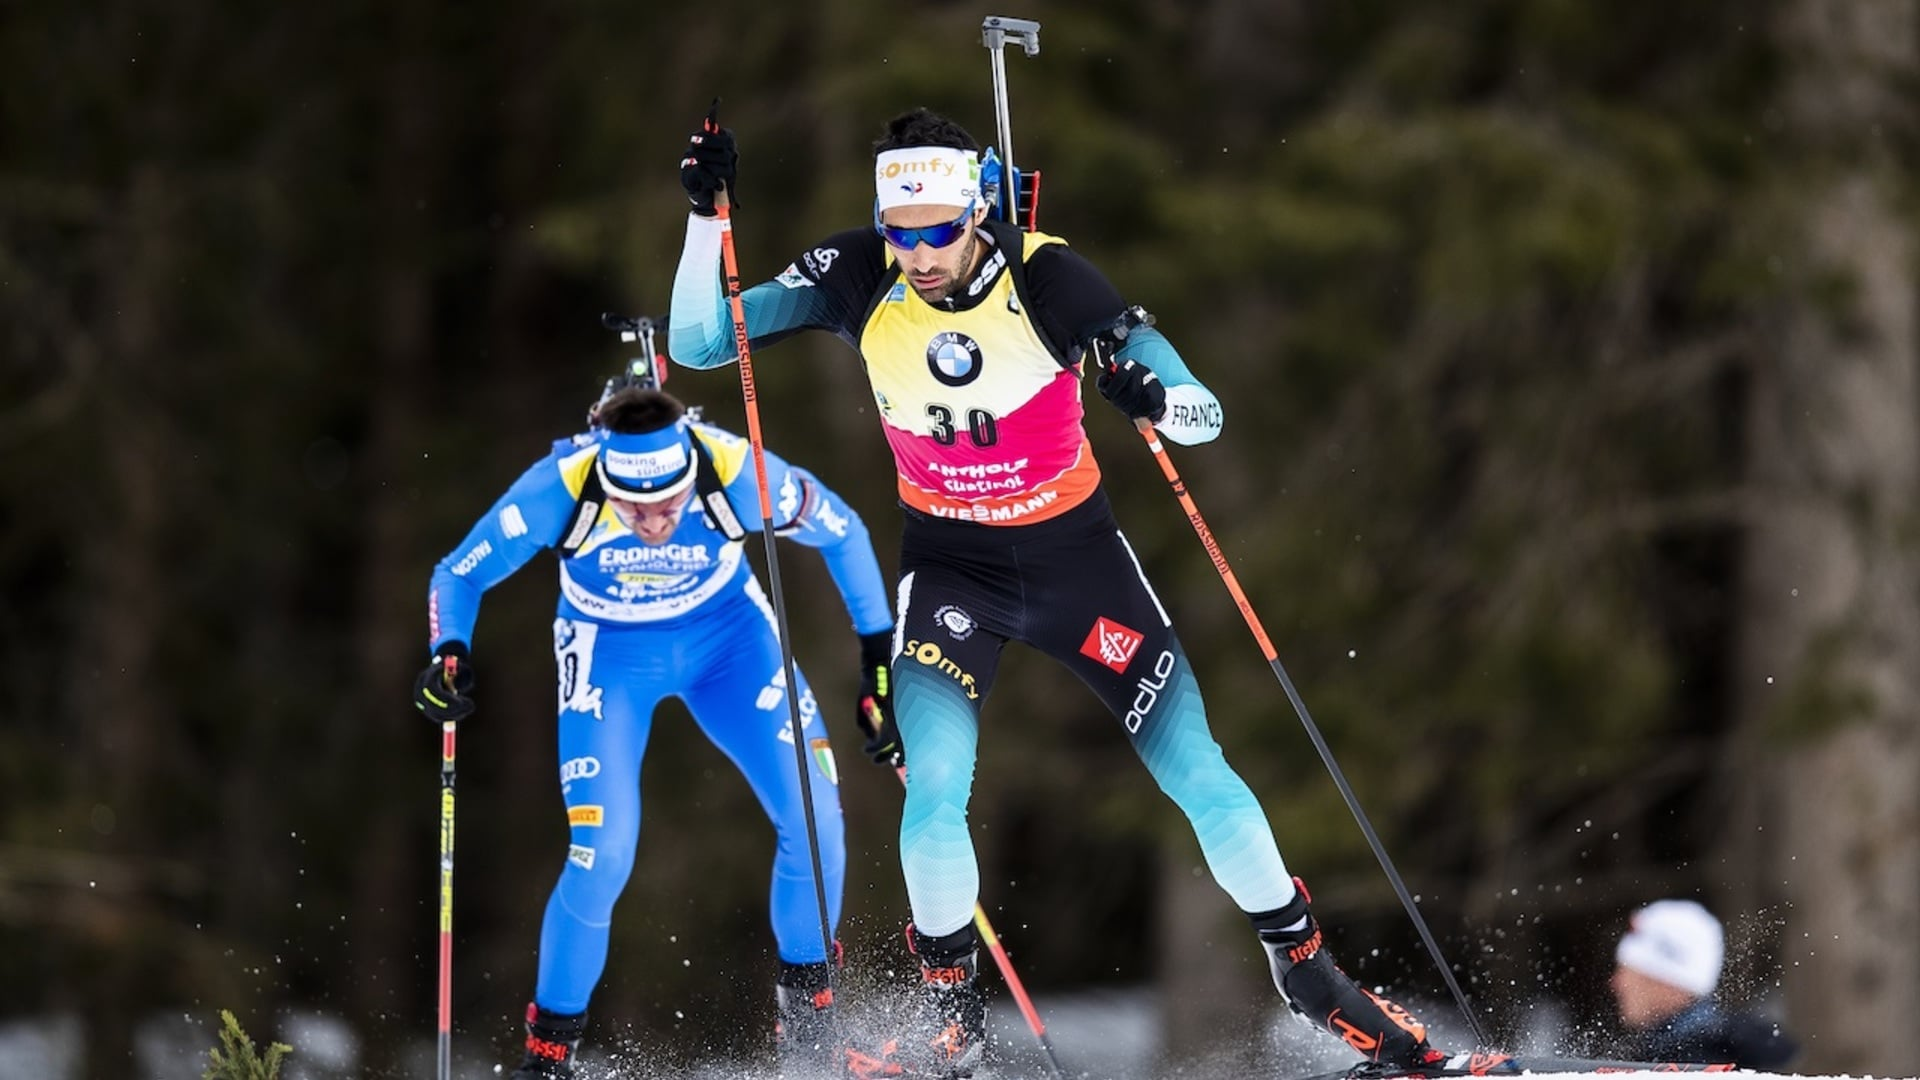 19.02.2020 - Fourcade wins gripping duel